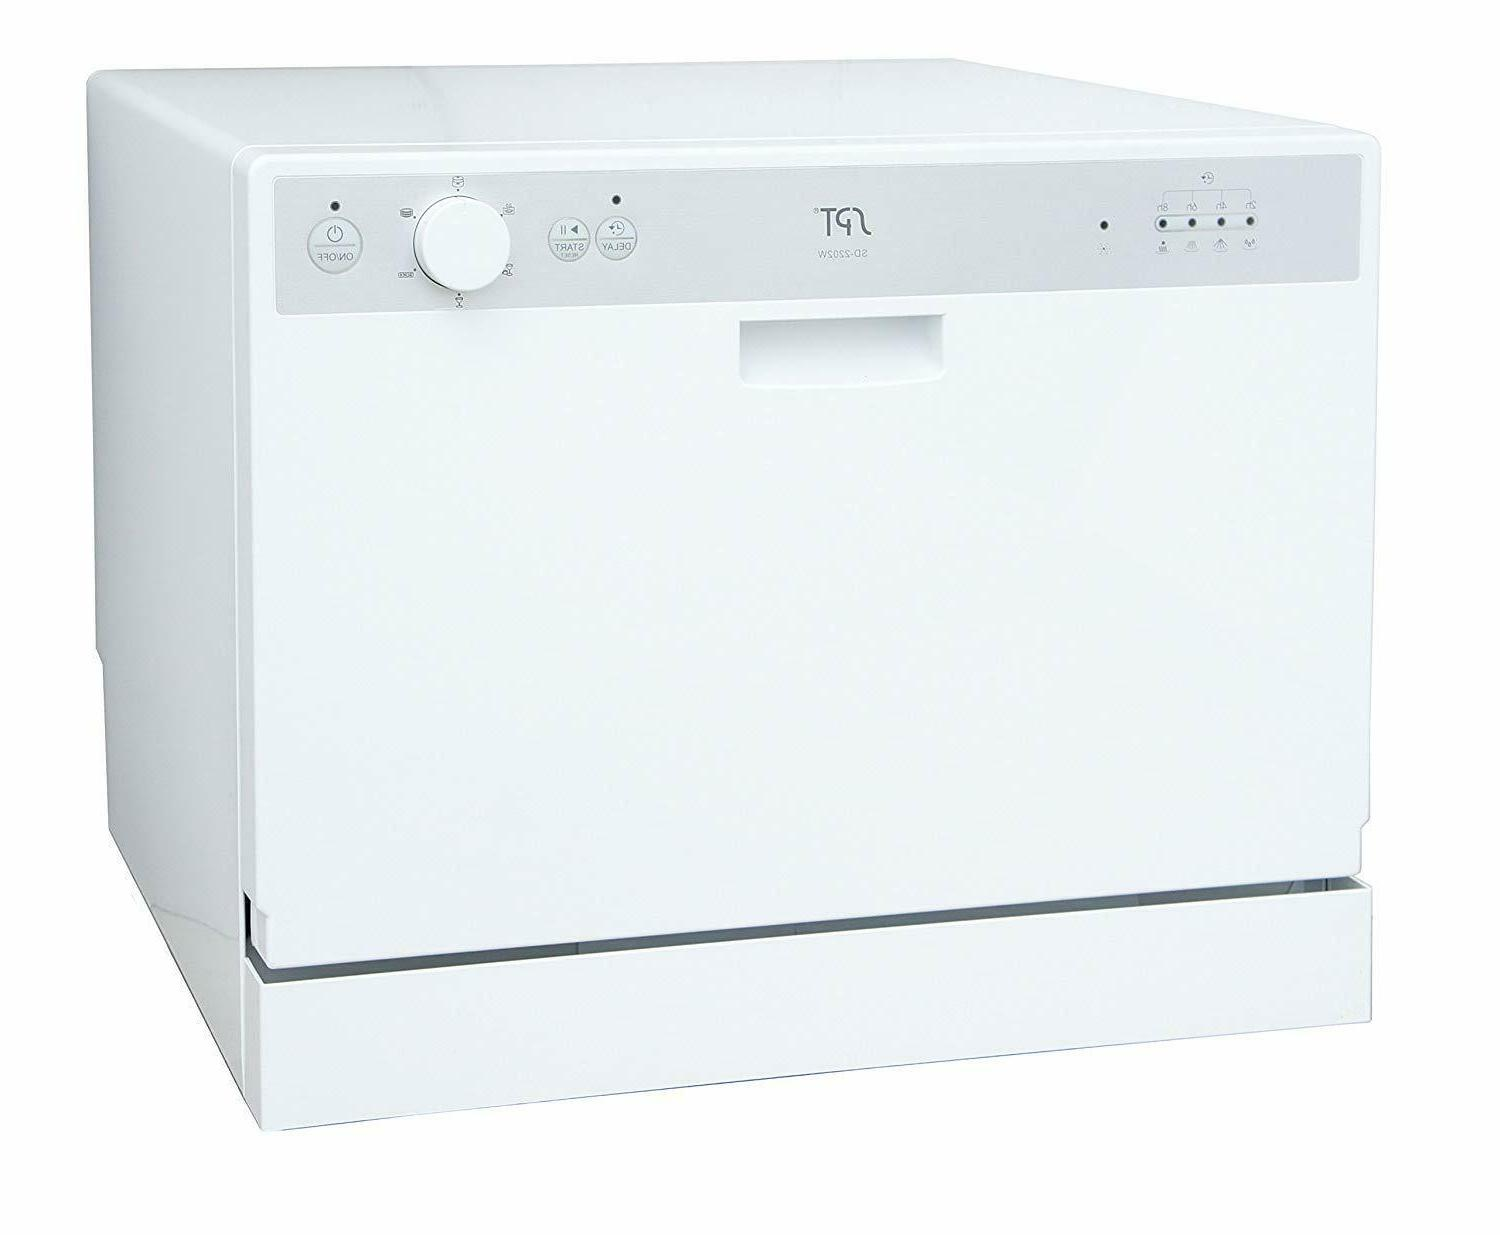 sunpentown countertop dishwasher with delay start white